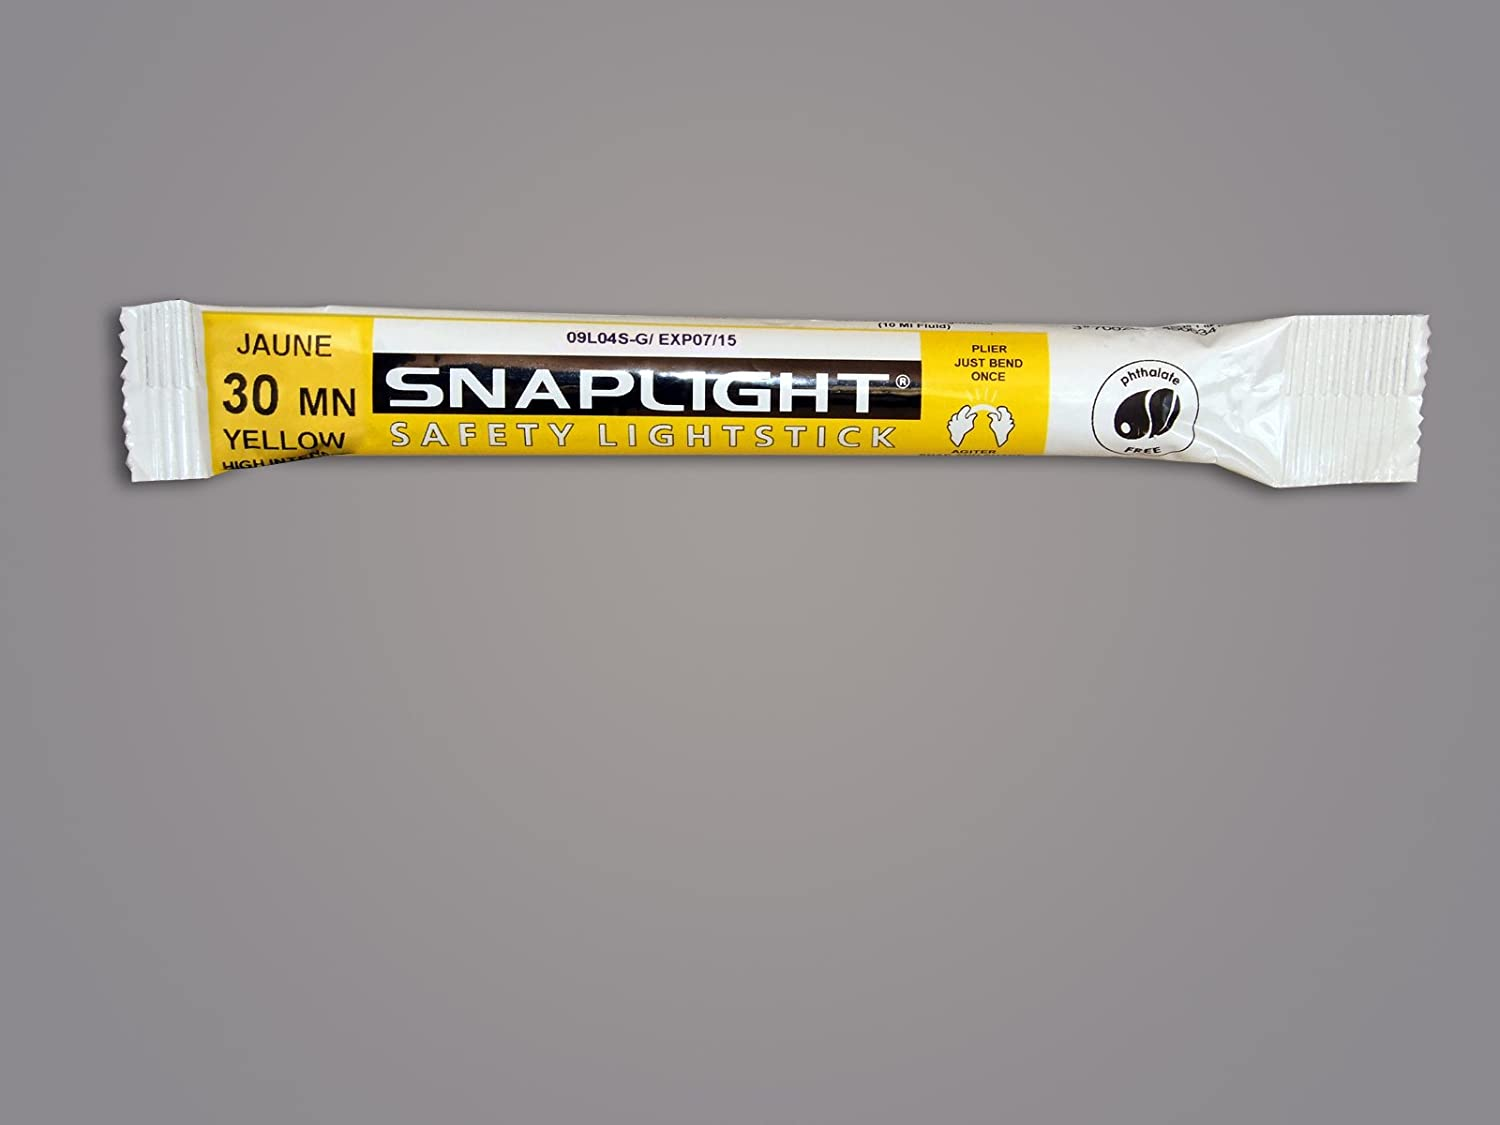 Cyalume SnapLight Industrial Grade Chemical Light Sticks, Yellow, High Intensity, 6' Long, 30 Minute Duration (Pack of 10) 6 Long Cyalume Technologies